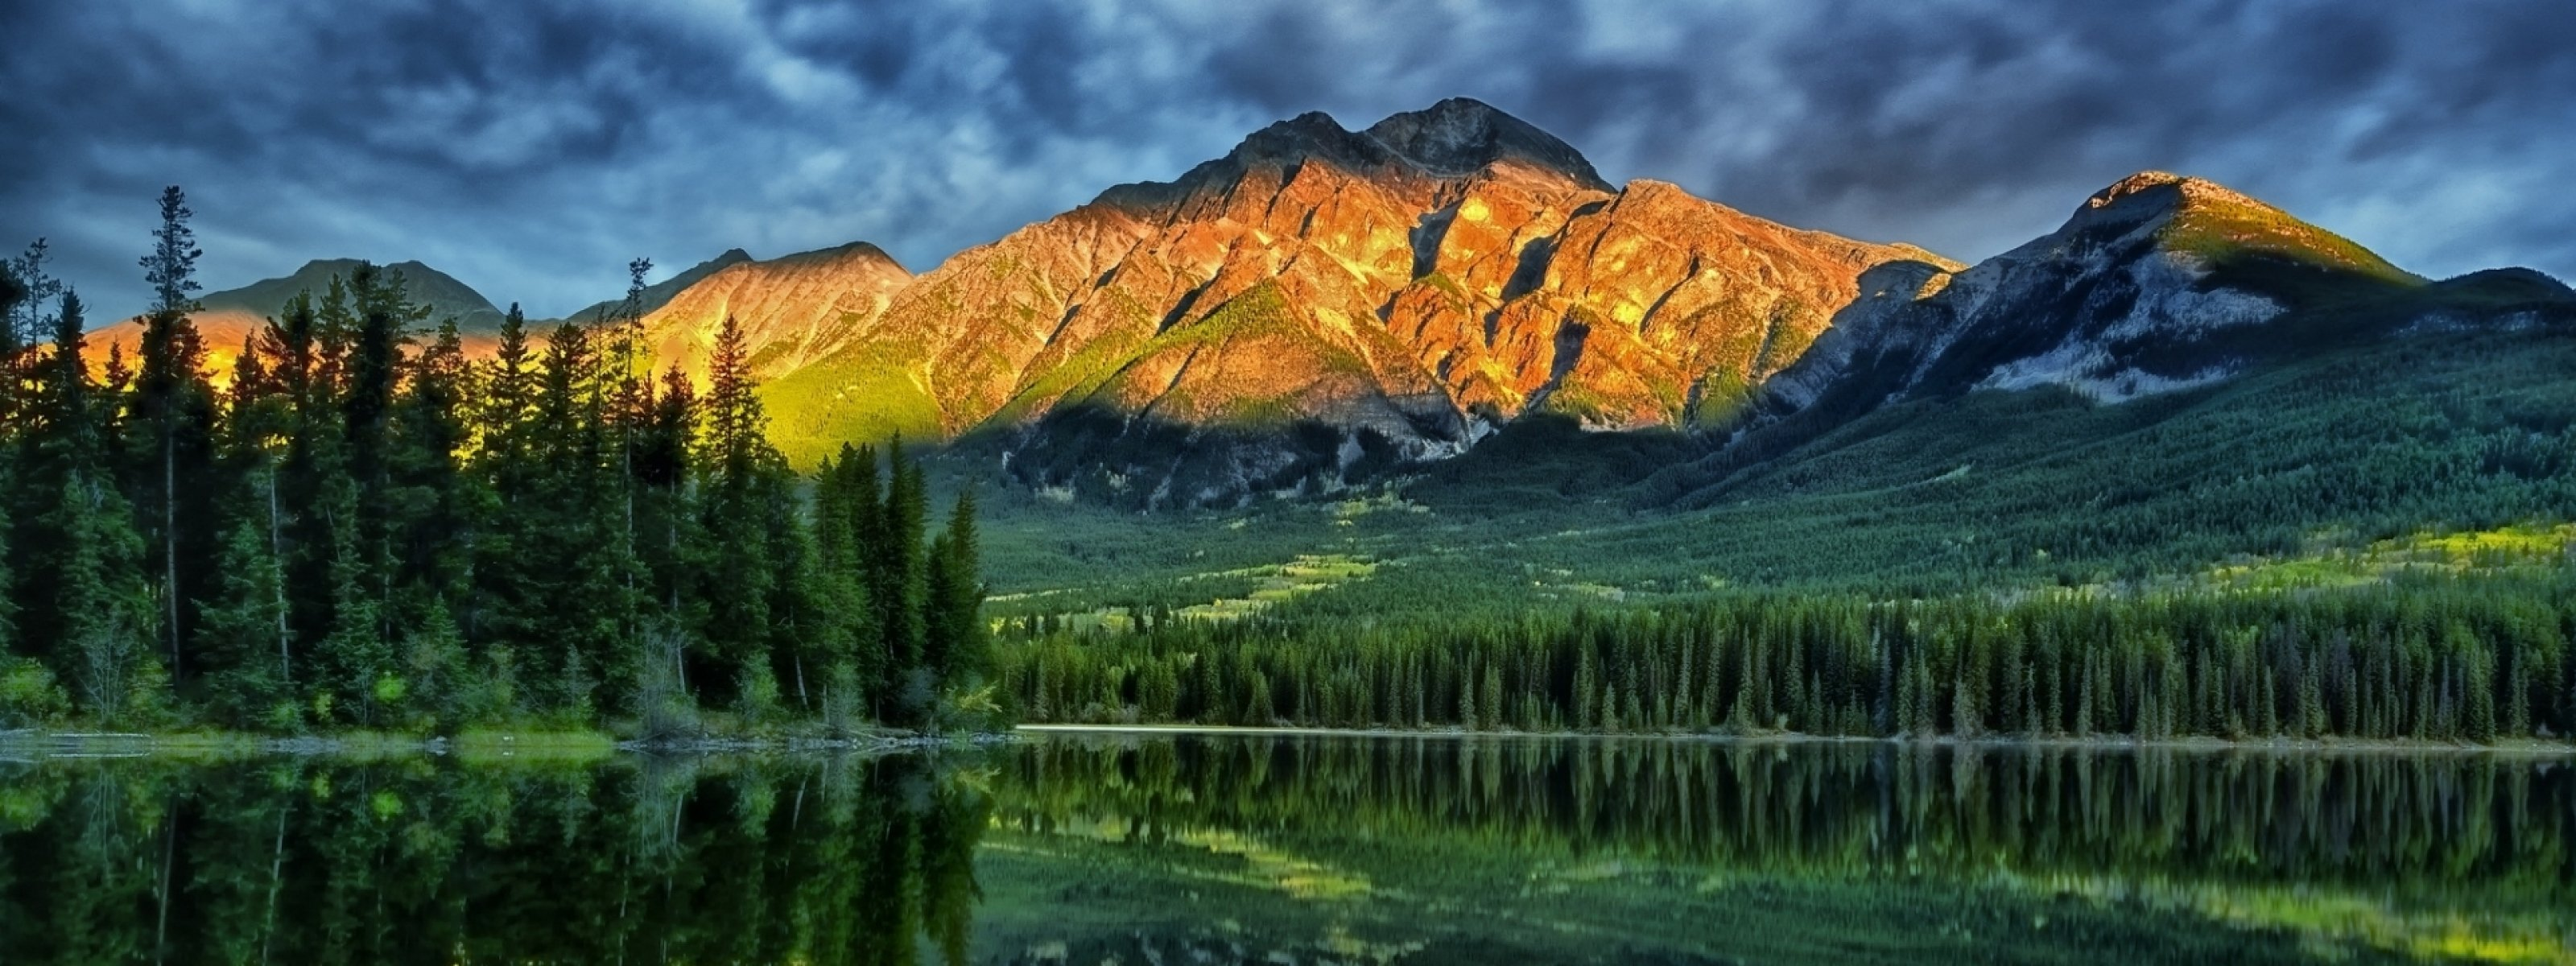 monitor widescreen wallpapers - photo #34